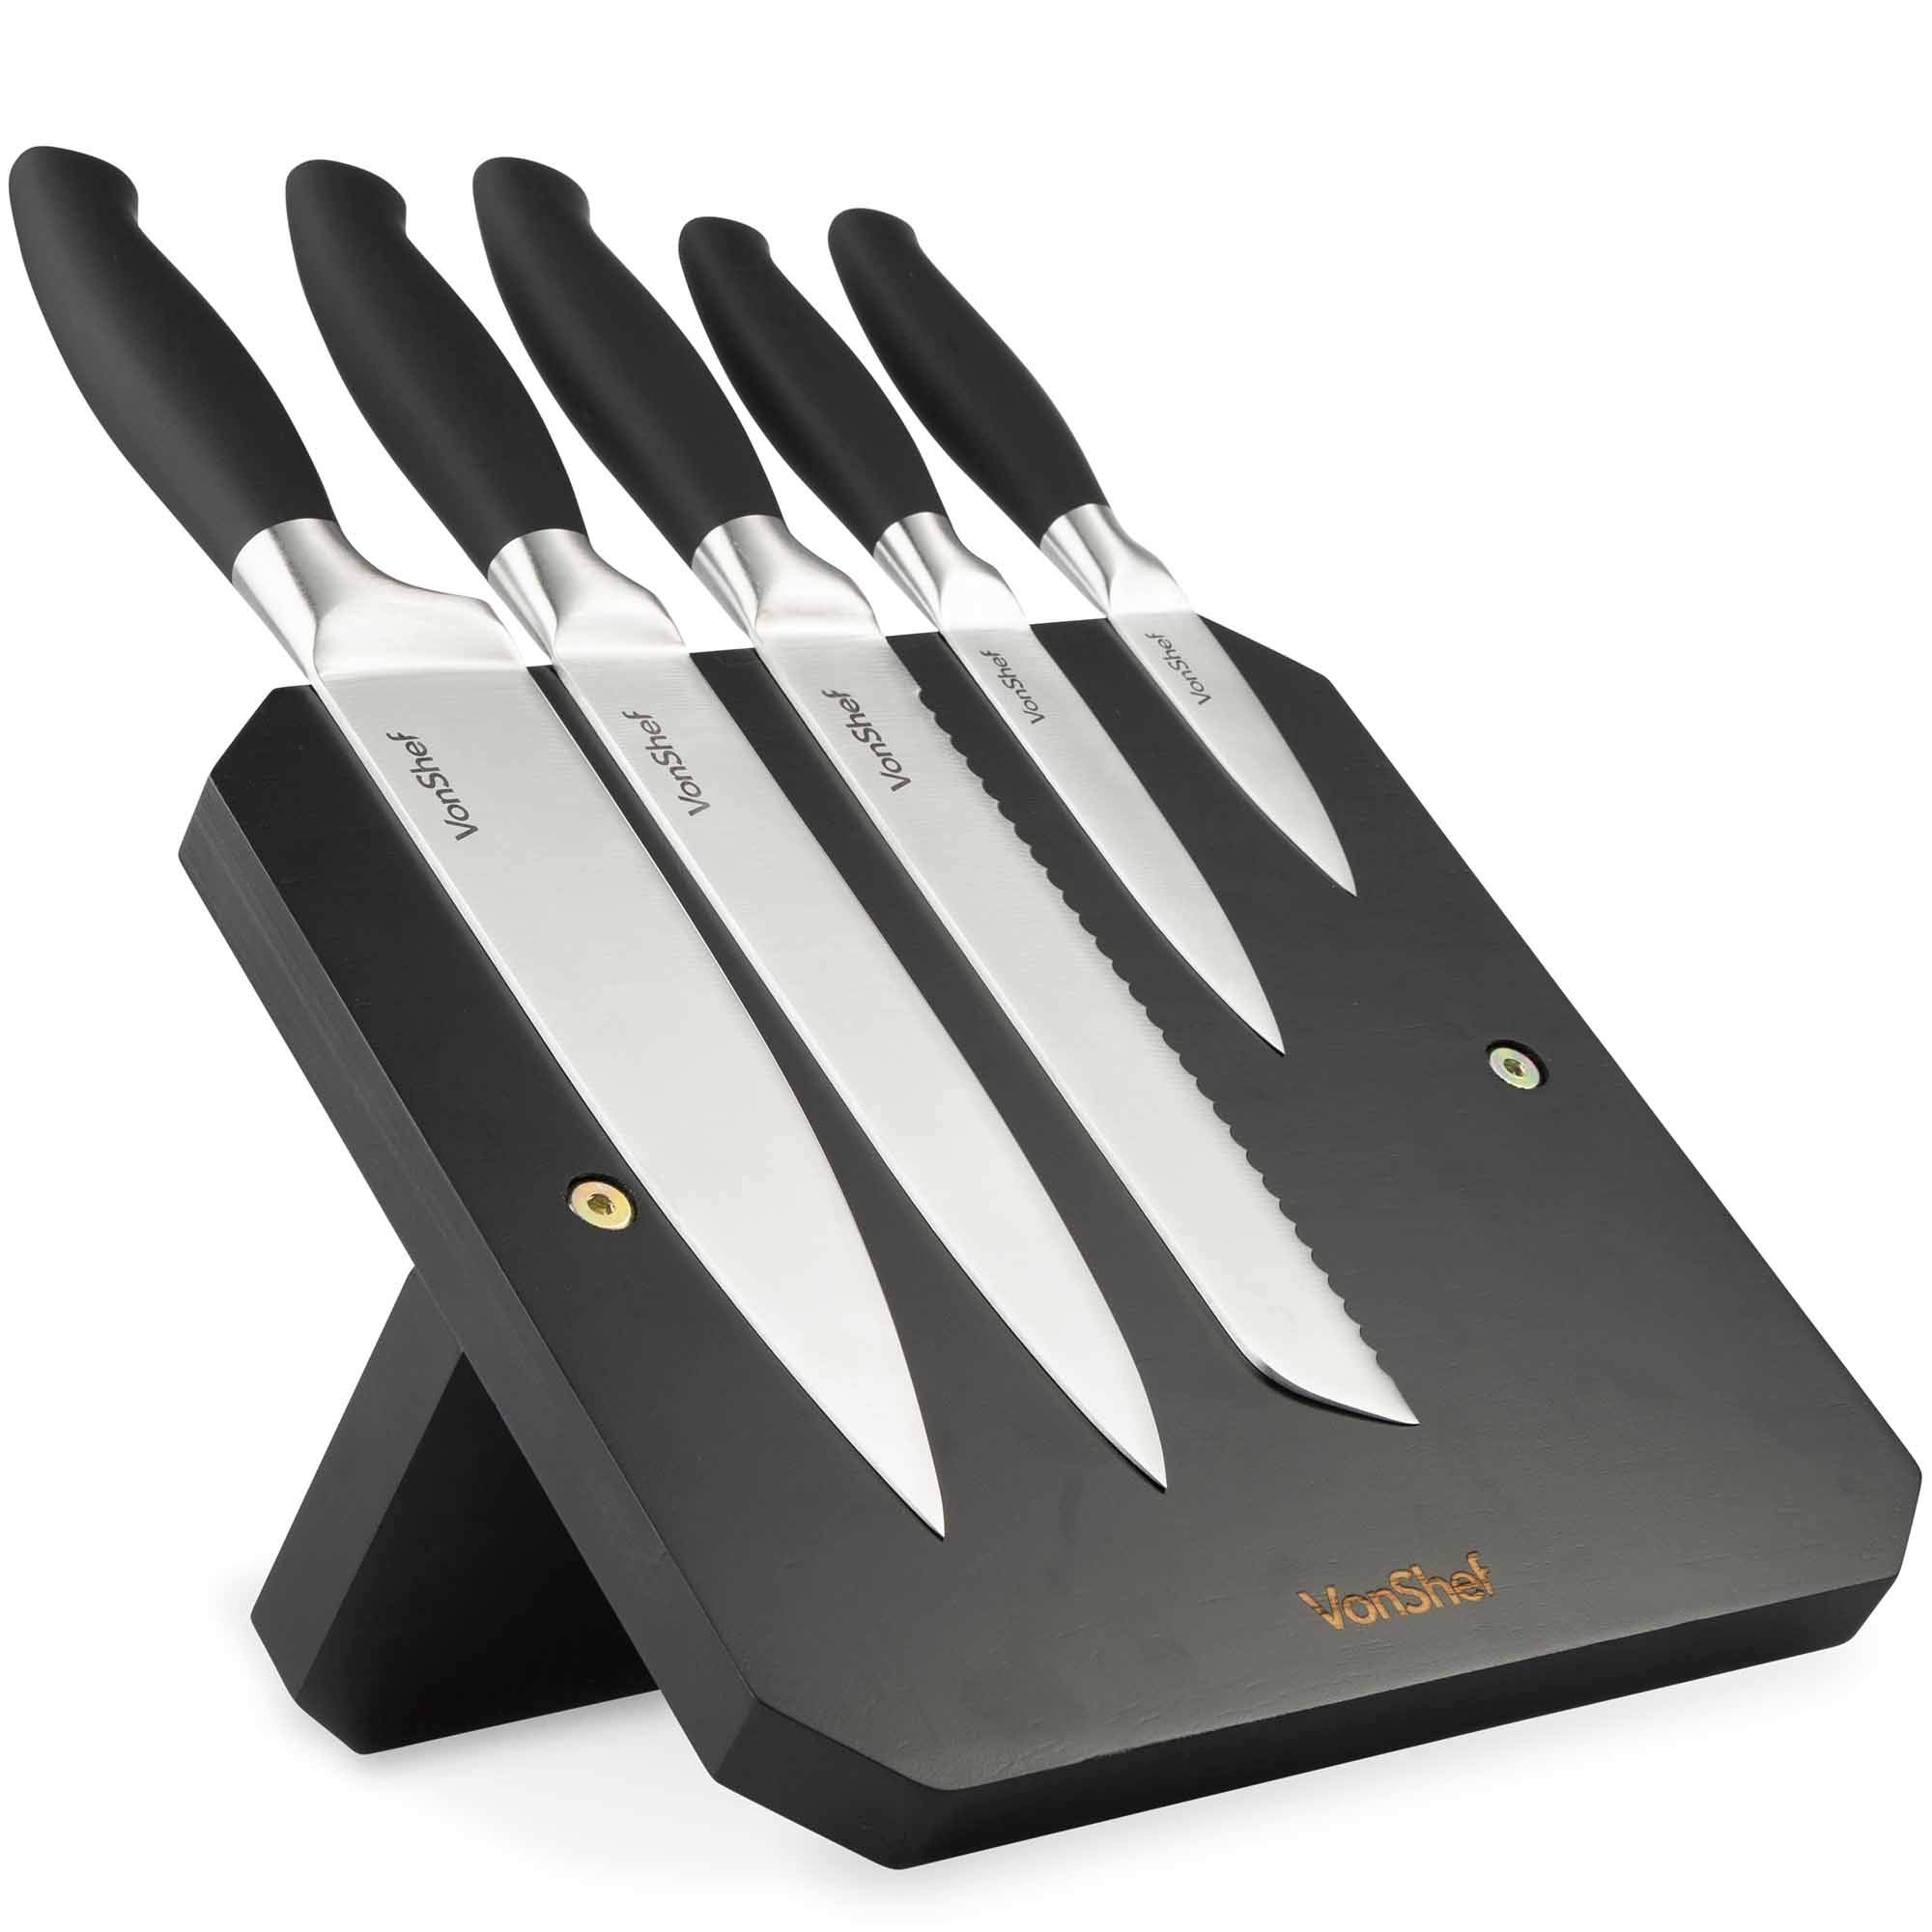 VonShef 5pc Piece Magnetic Knife Block Set/Stand / Holder – Includes Chef's, Paring, Carving Bread & Utility Knives with Ergonomic, Soft Touch Handles